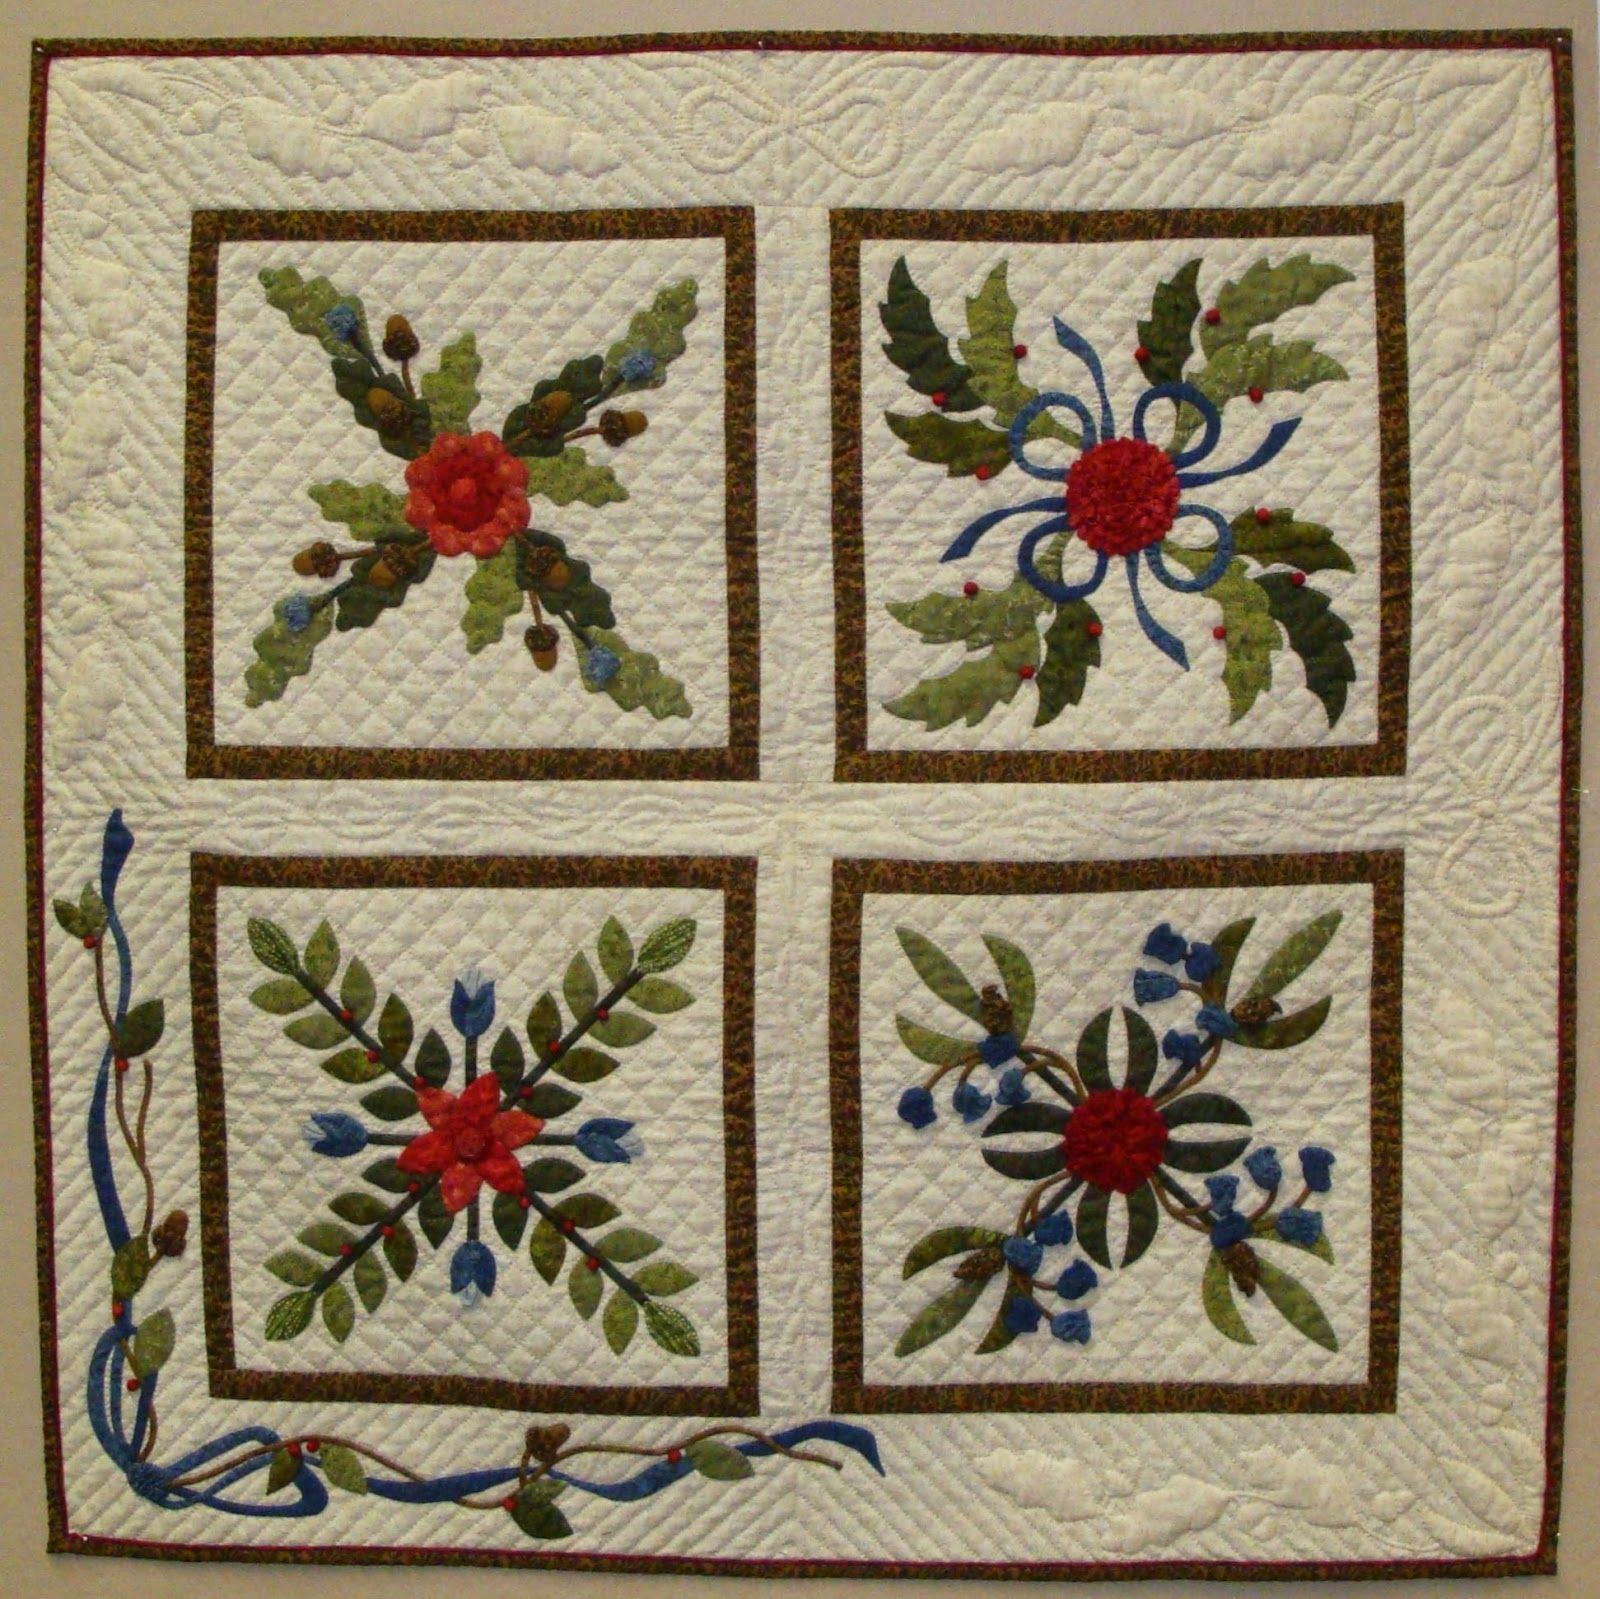 FABRIC THERAPY: Sauder Village Quilt Show: Part One... | Beautiful ... : sauder village quilt show - Adamdwight.com